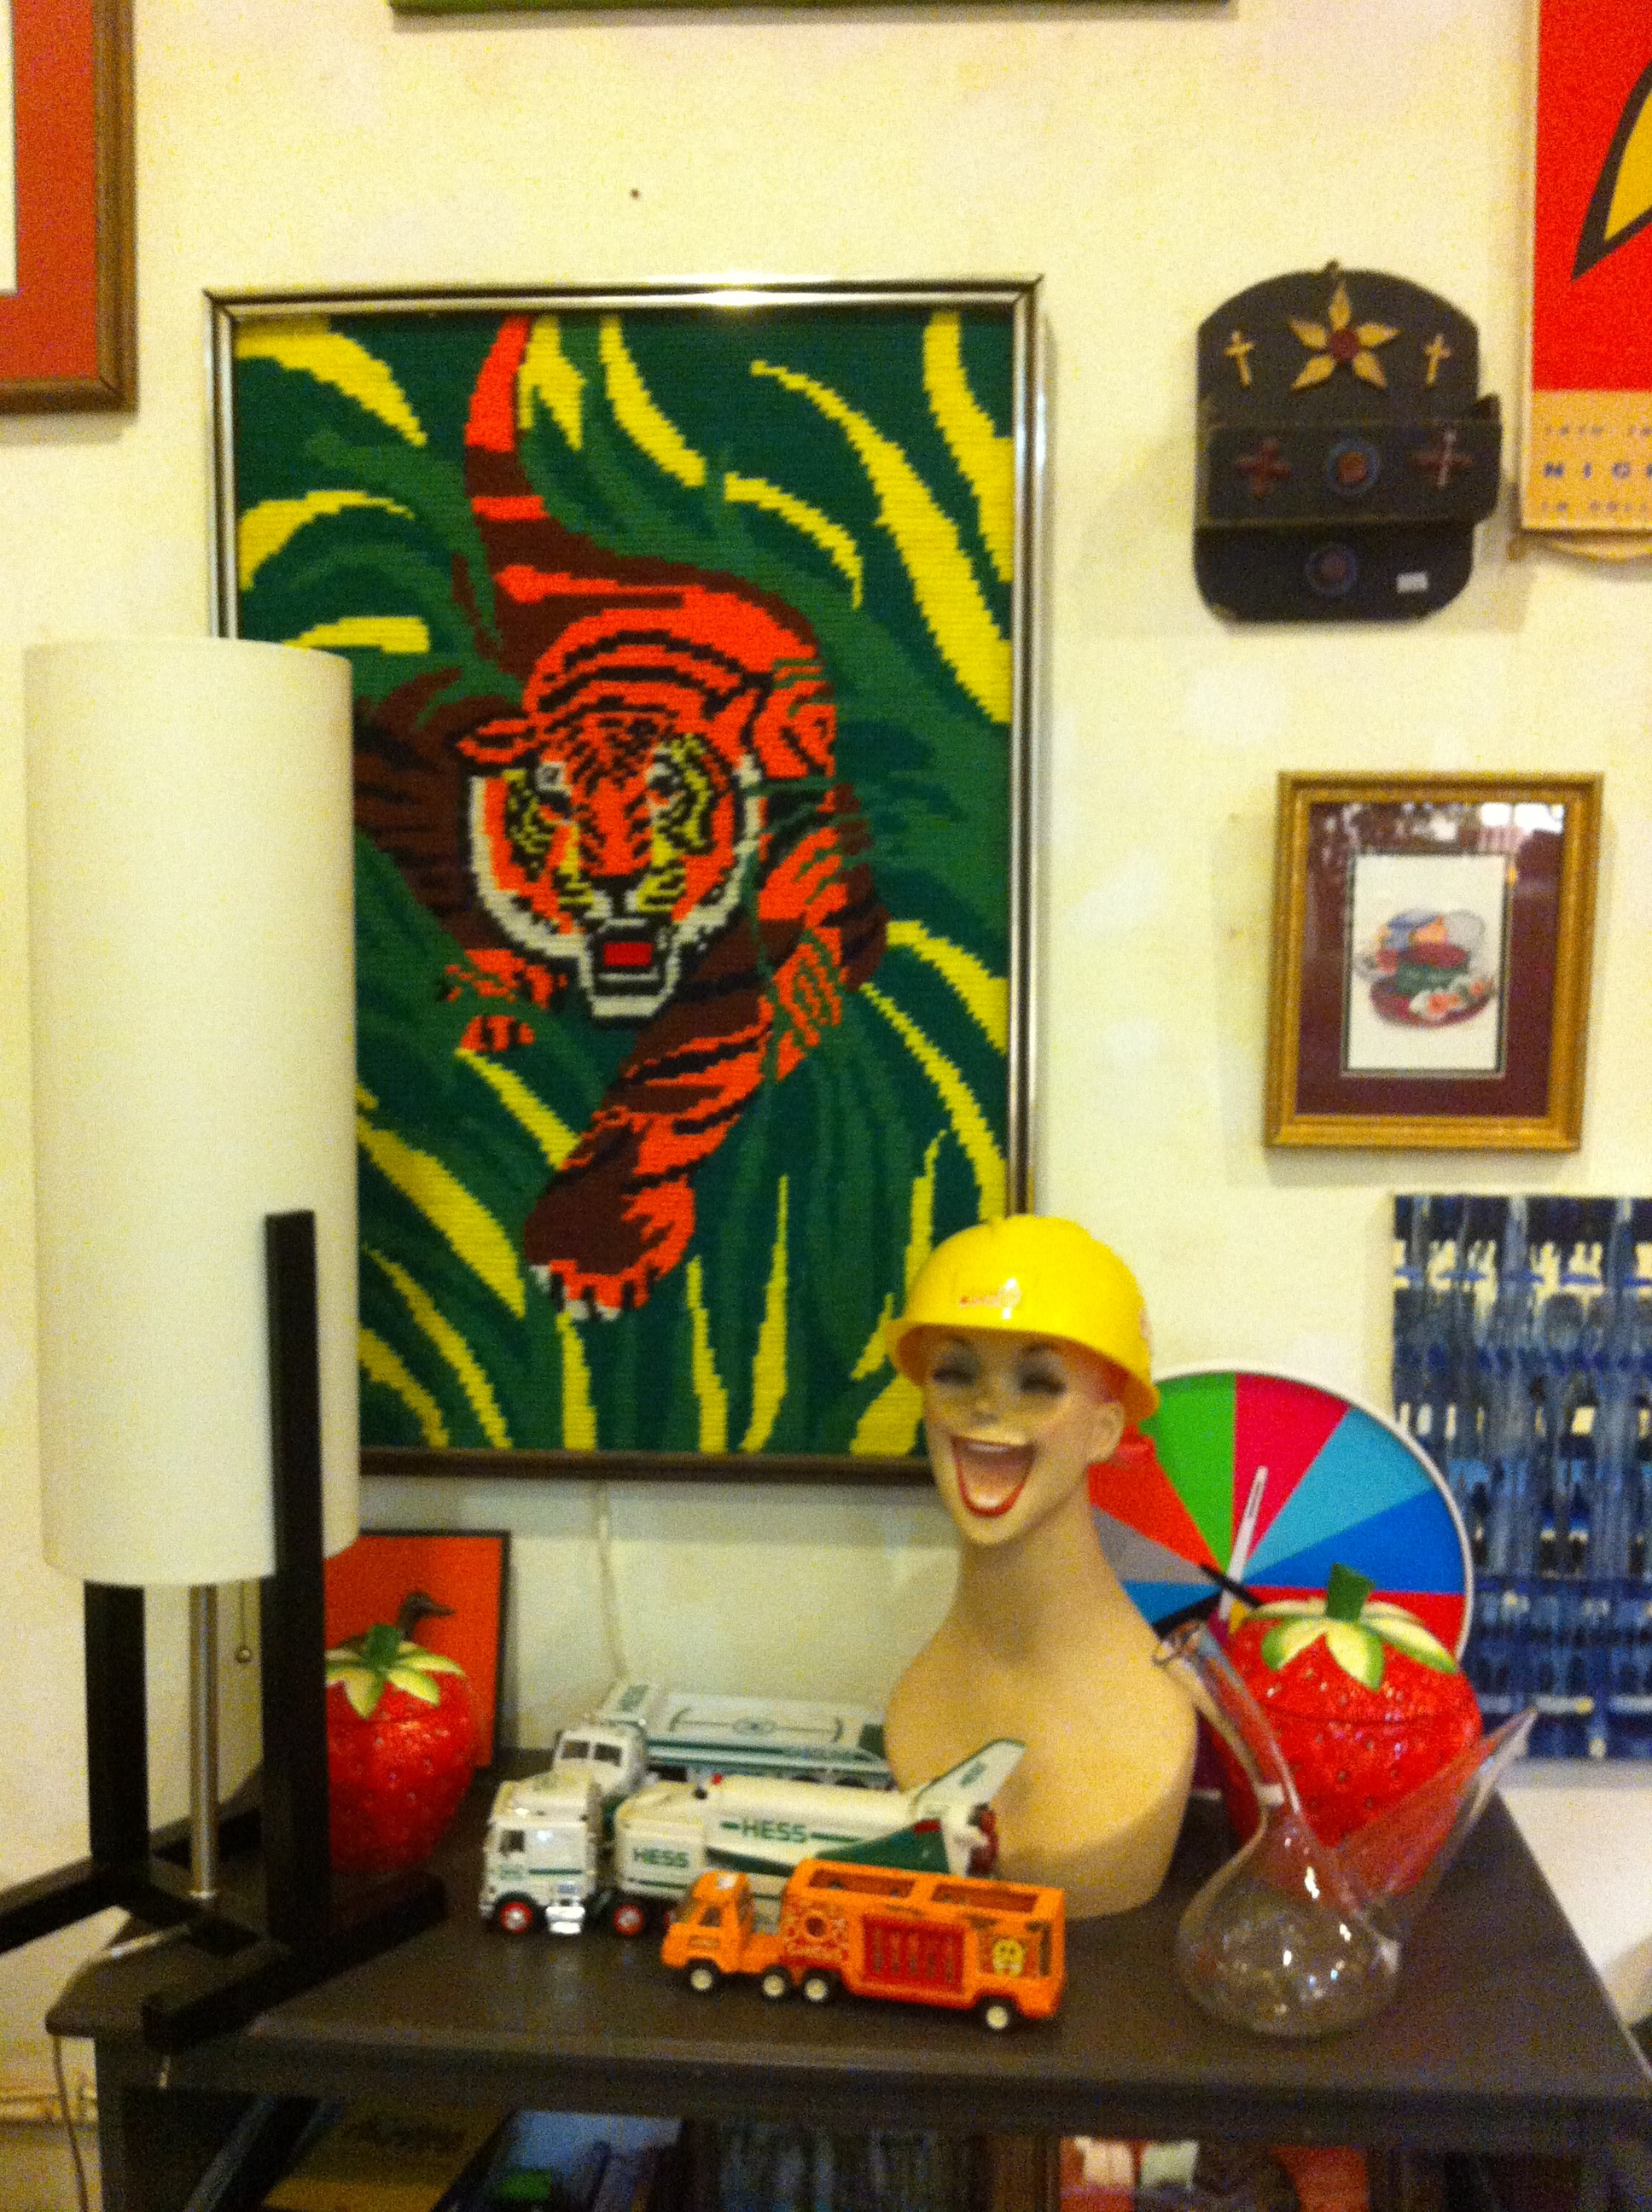 A yarn art tiger and smiley faced mannequin with hat